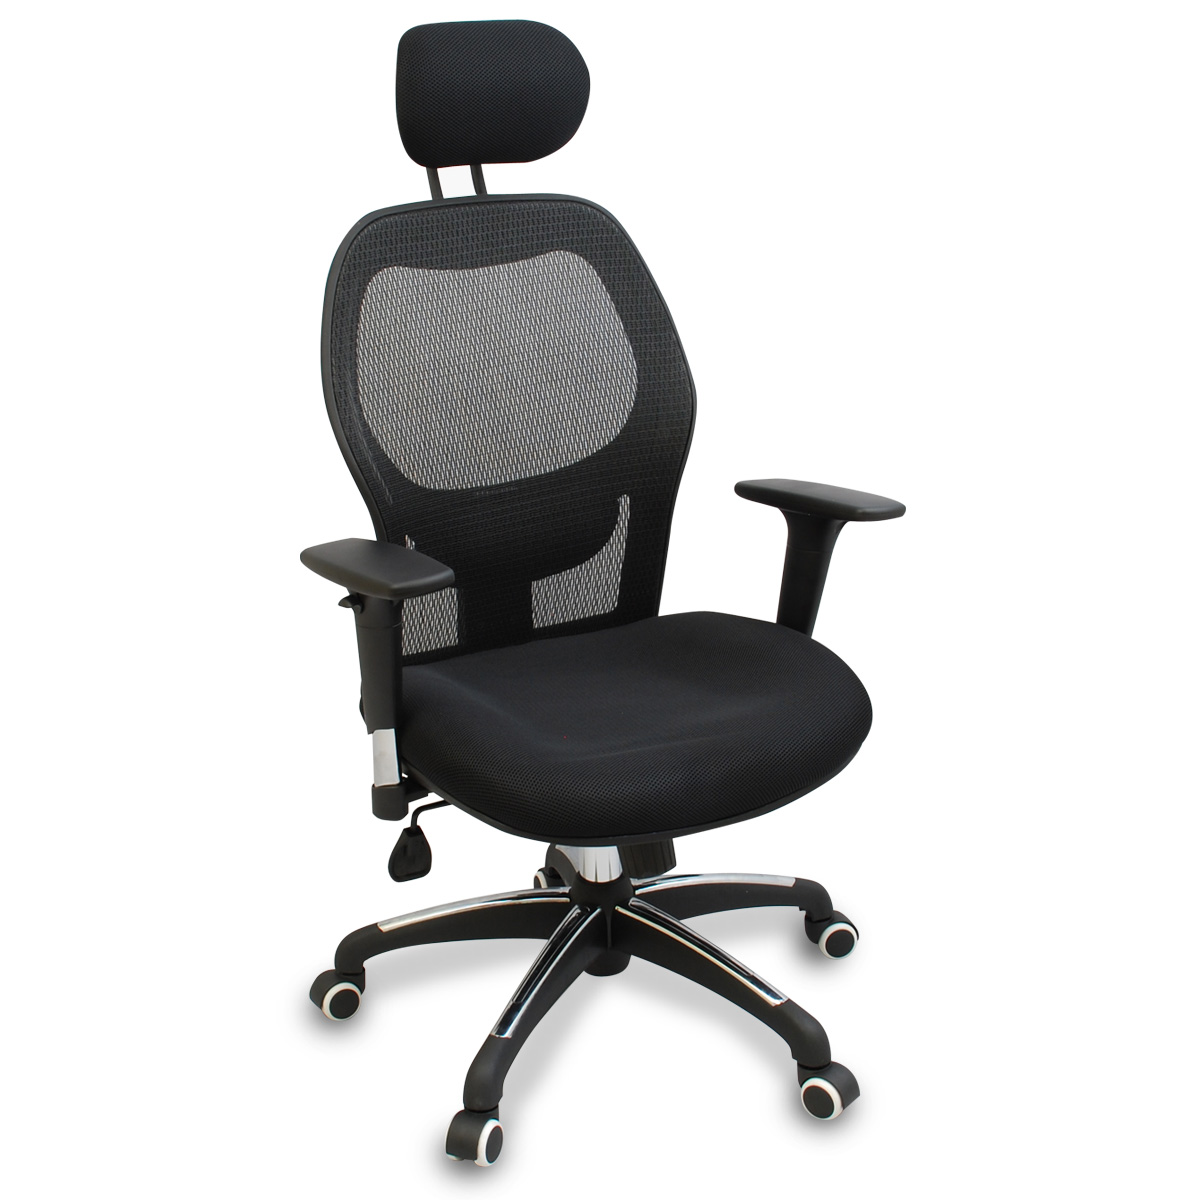 Mesh Ergonomic Office Chair New Mesh Ergonomic Office Chair W Adjustable Headrest